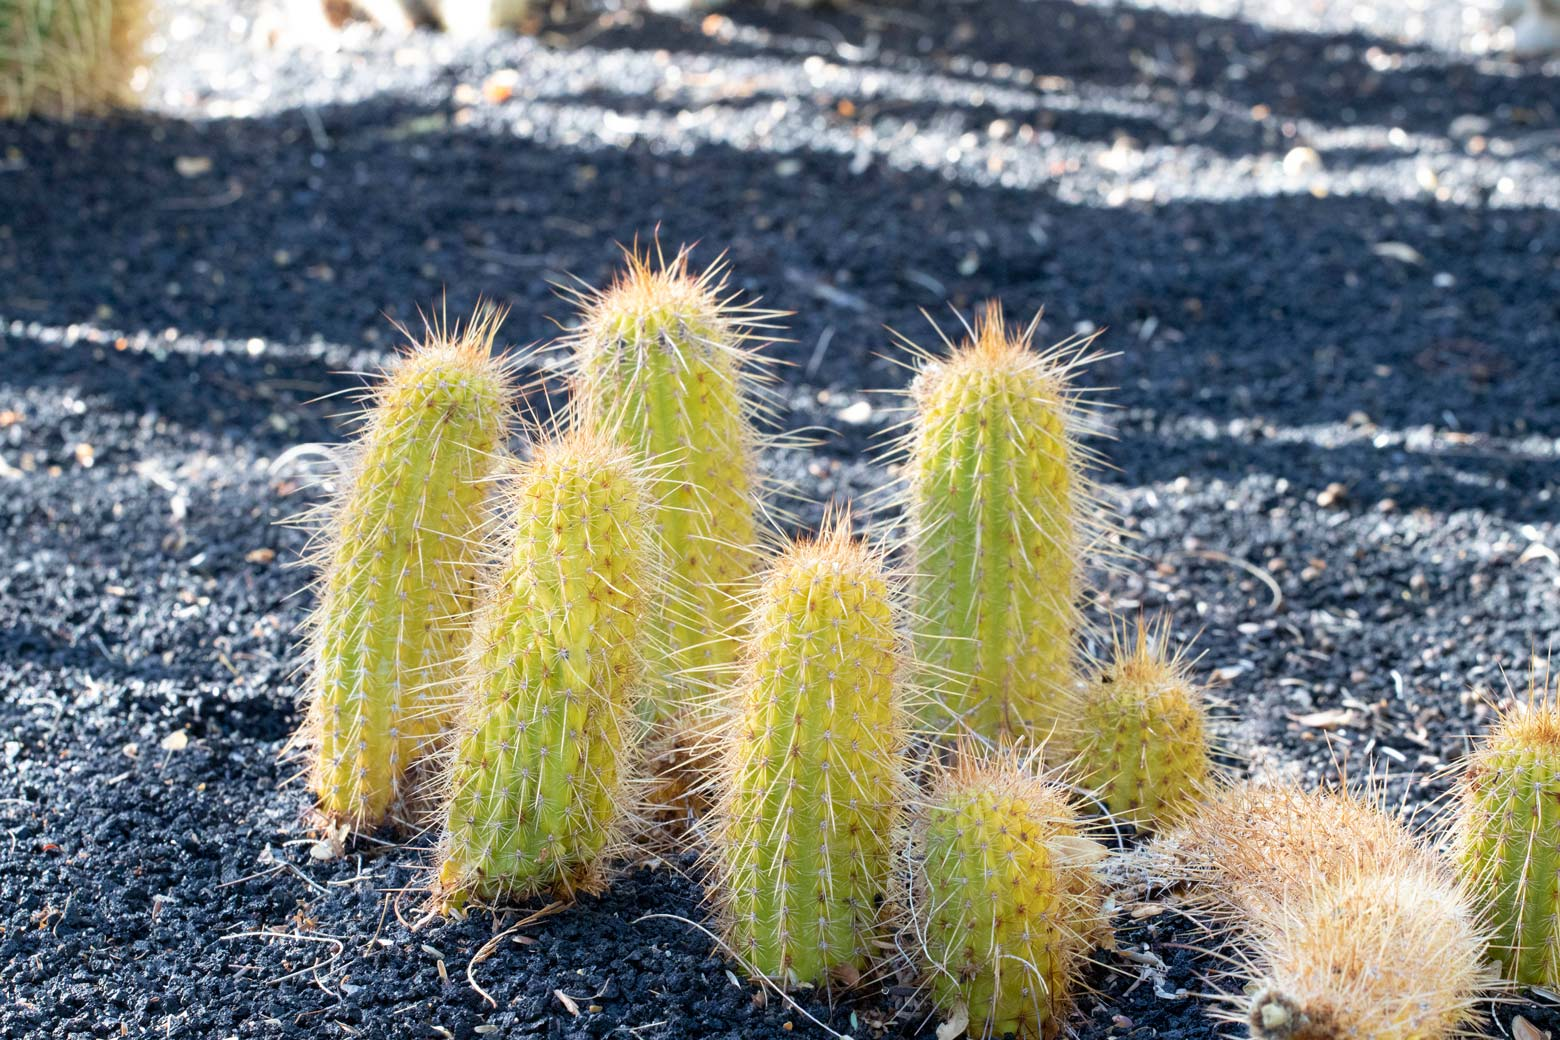 A group of small Torch cactus in the specimen bed.